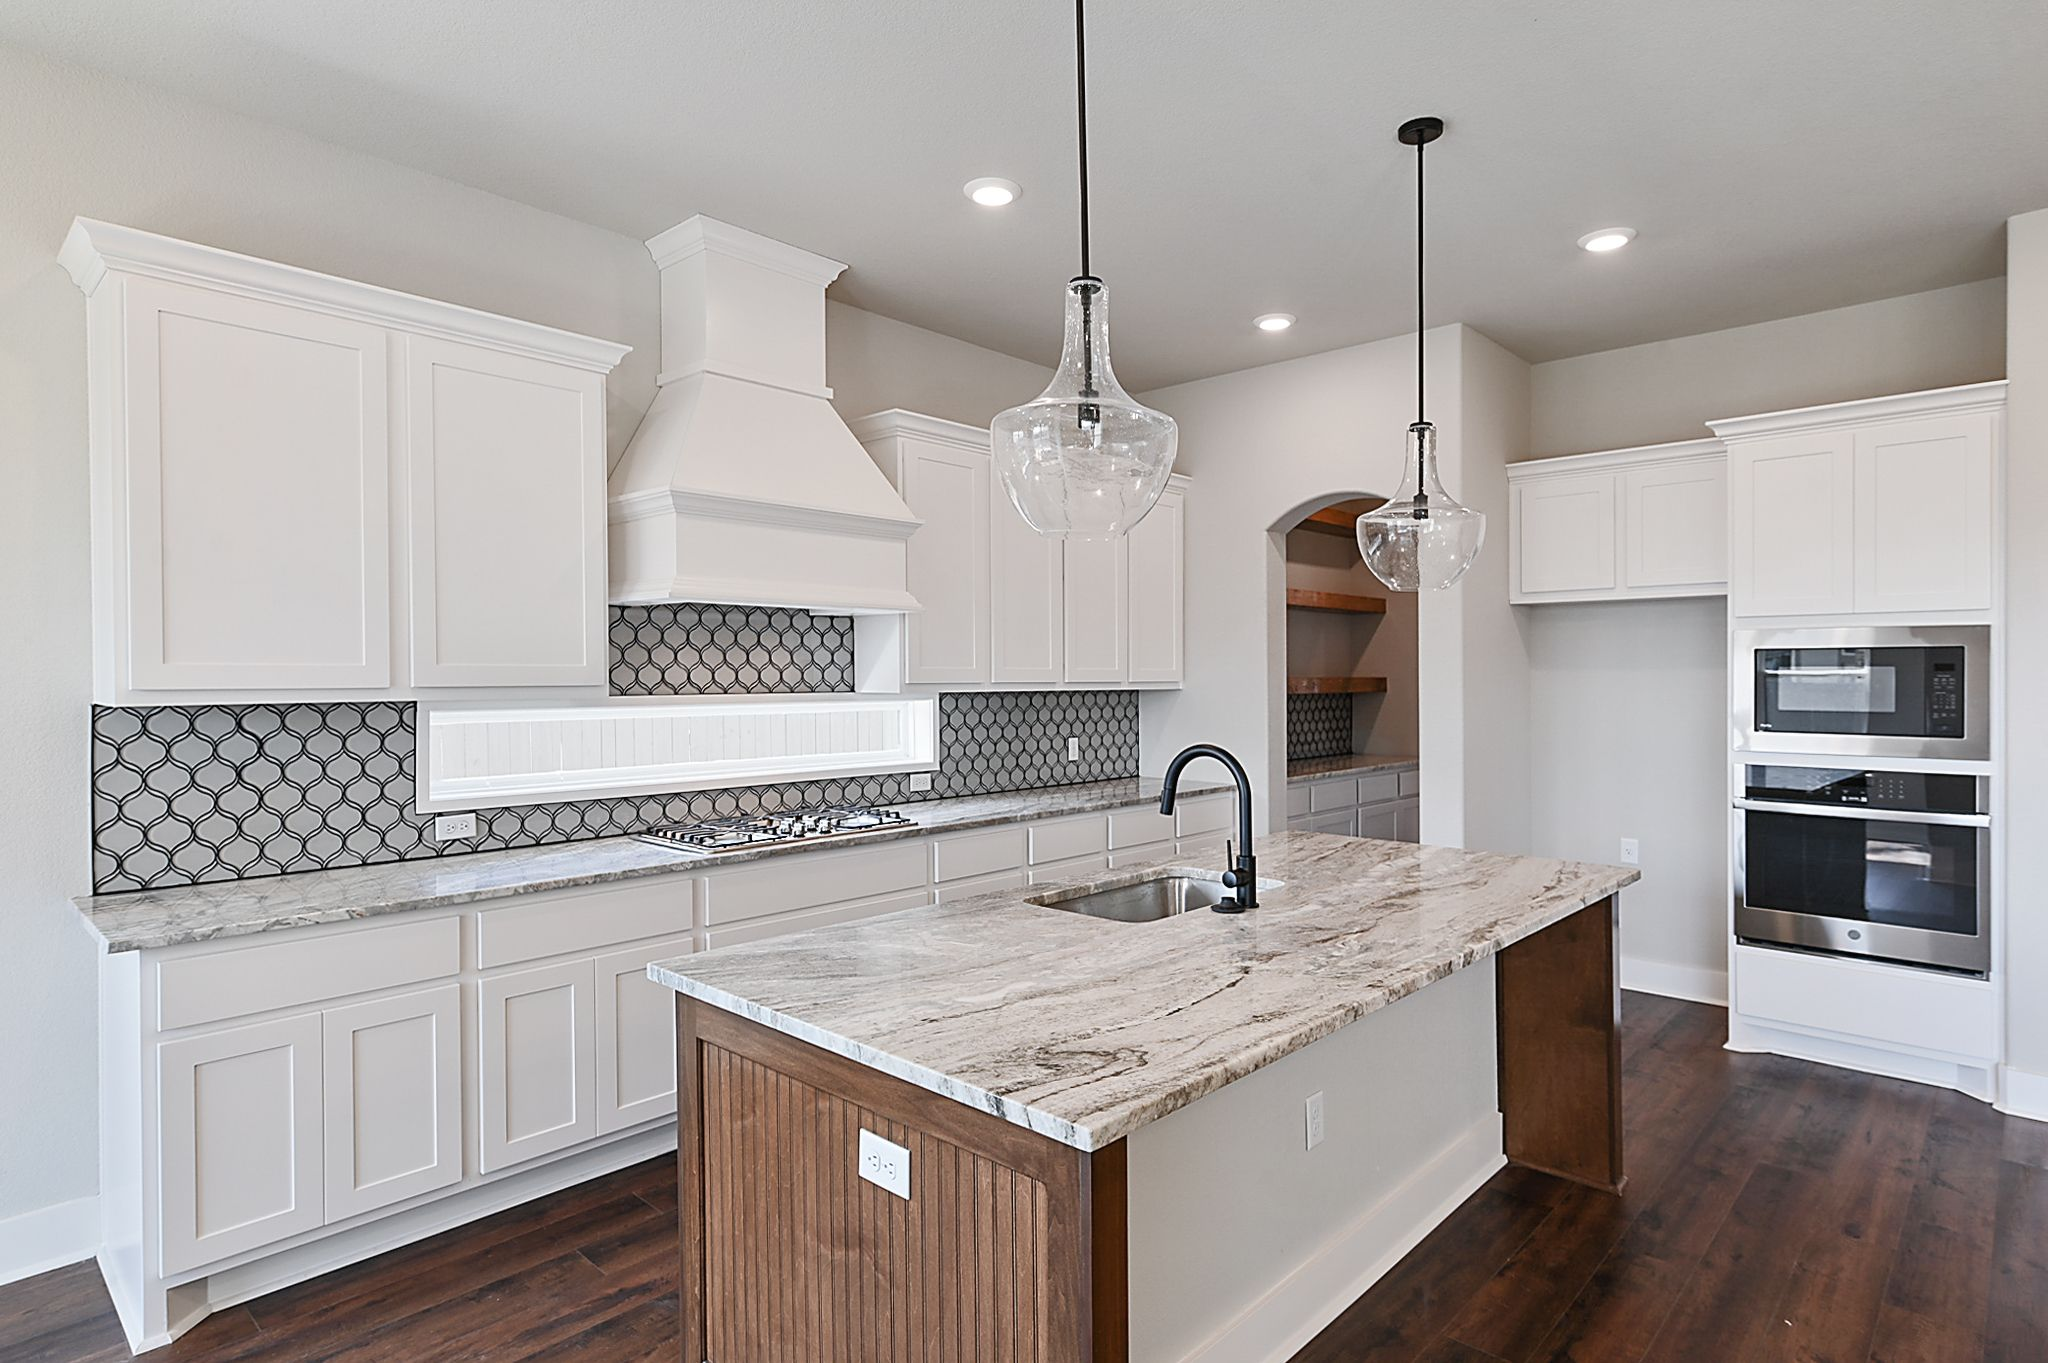 Kitchen featured in the Abigail By Blackstone Homes in Bryan-College Station, TX